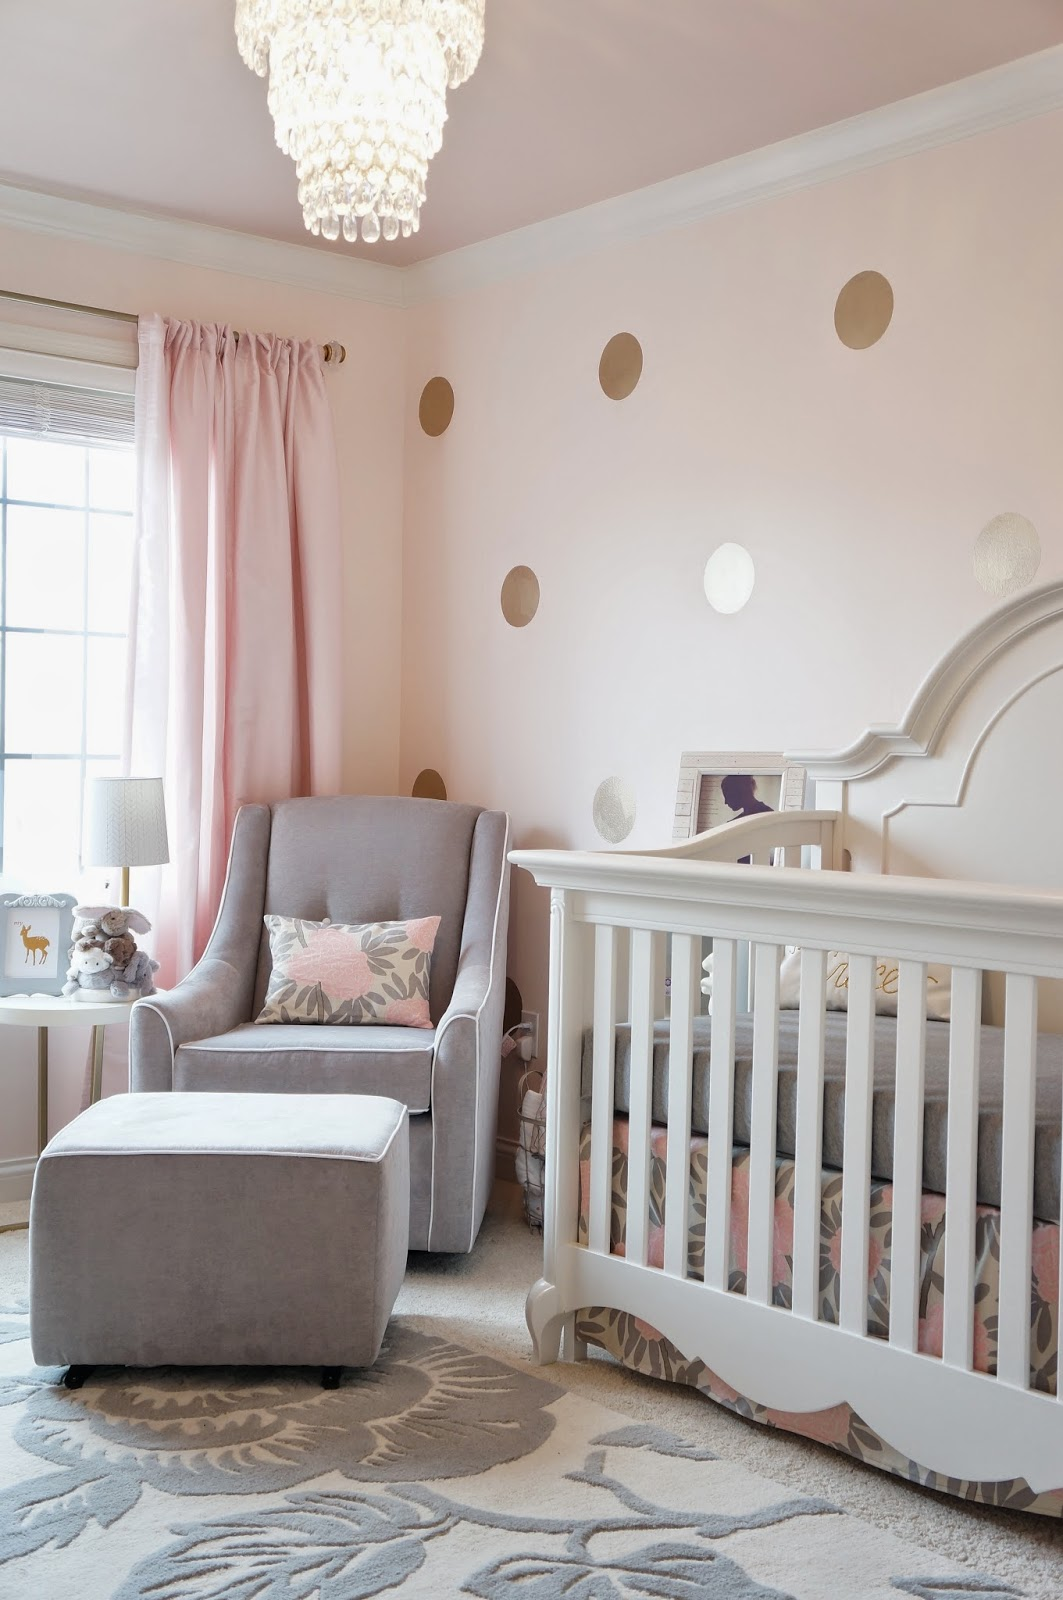 Toddler Girl Room Interior Design: It's A Pretty Prins Life: Nursery Reveal